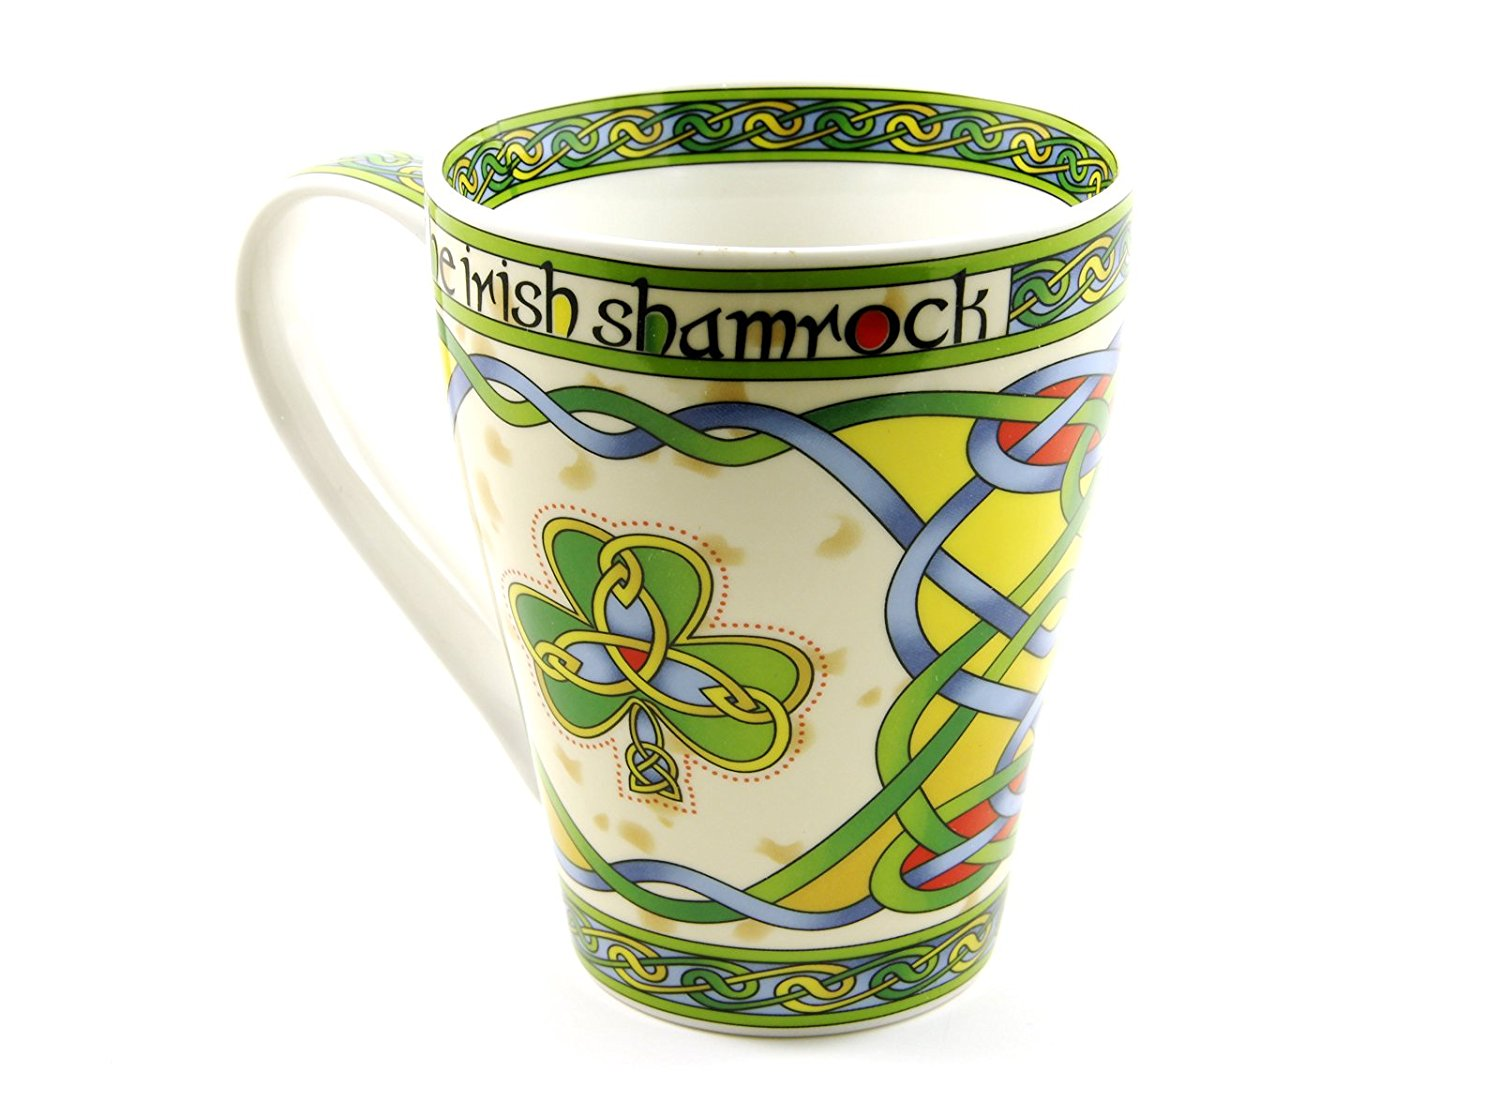 Irish Coffee Cup Shamrock Mug Cream Color Fine Bone China by